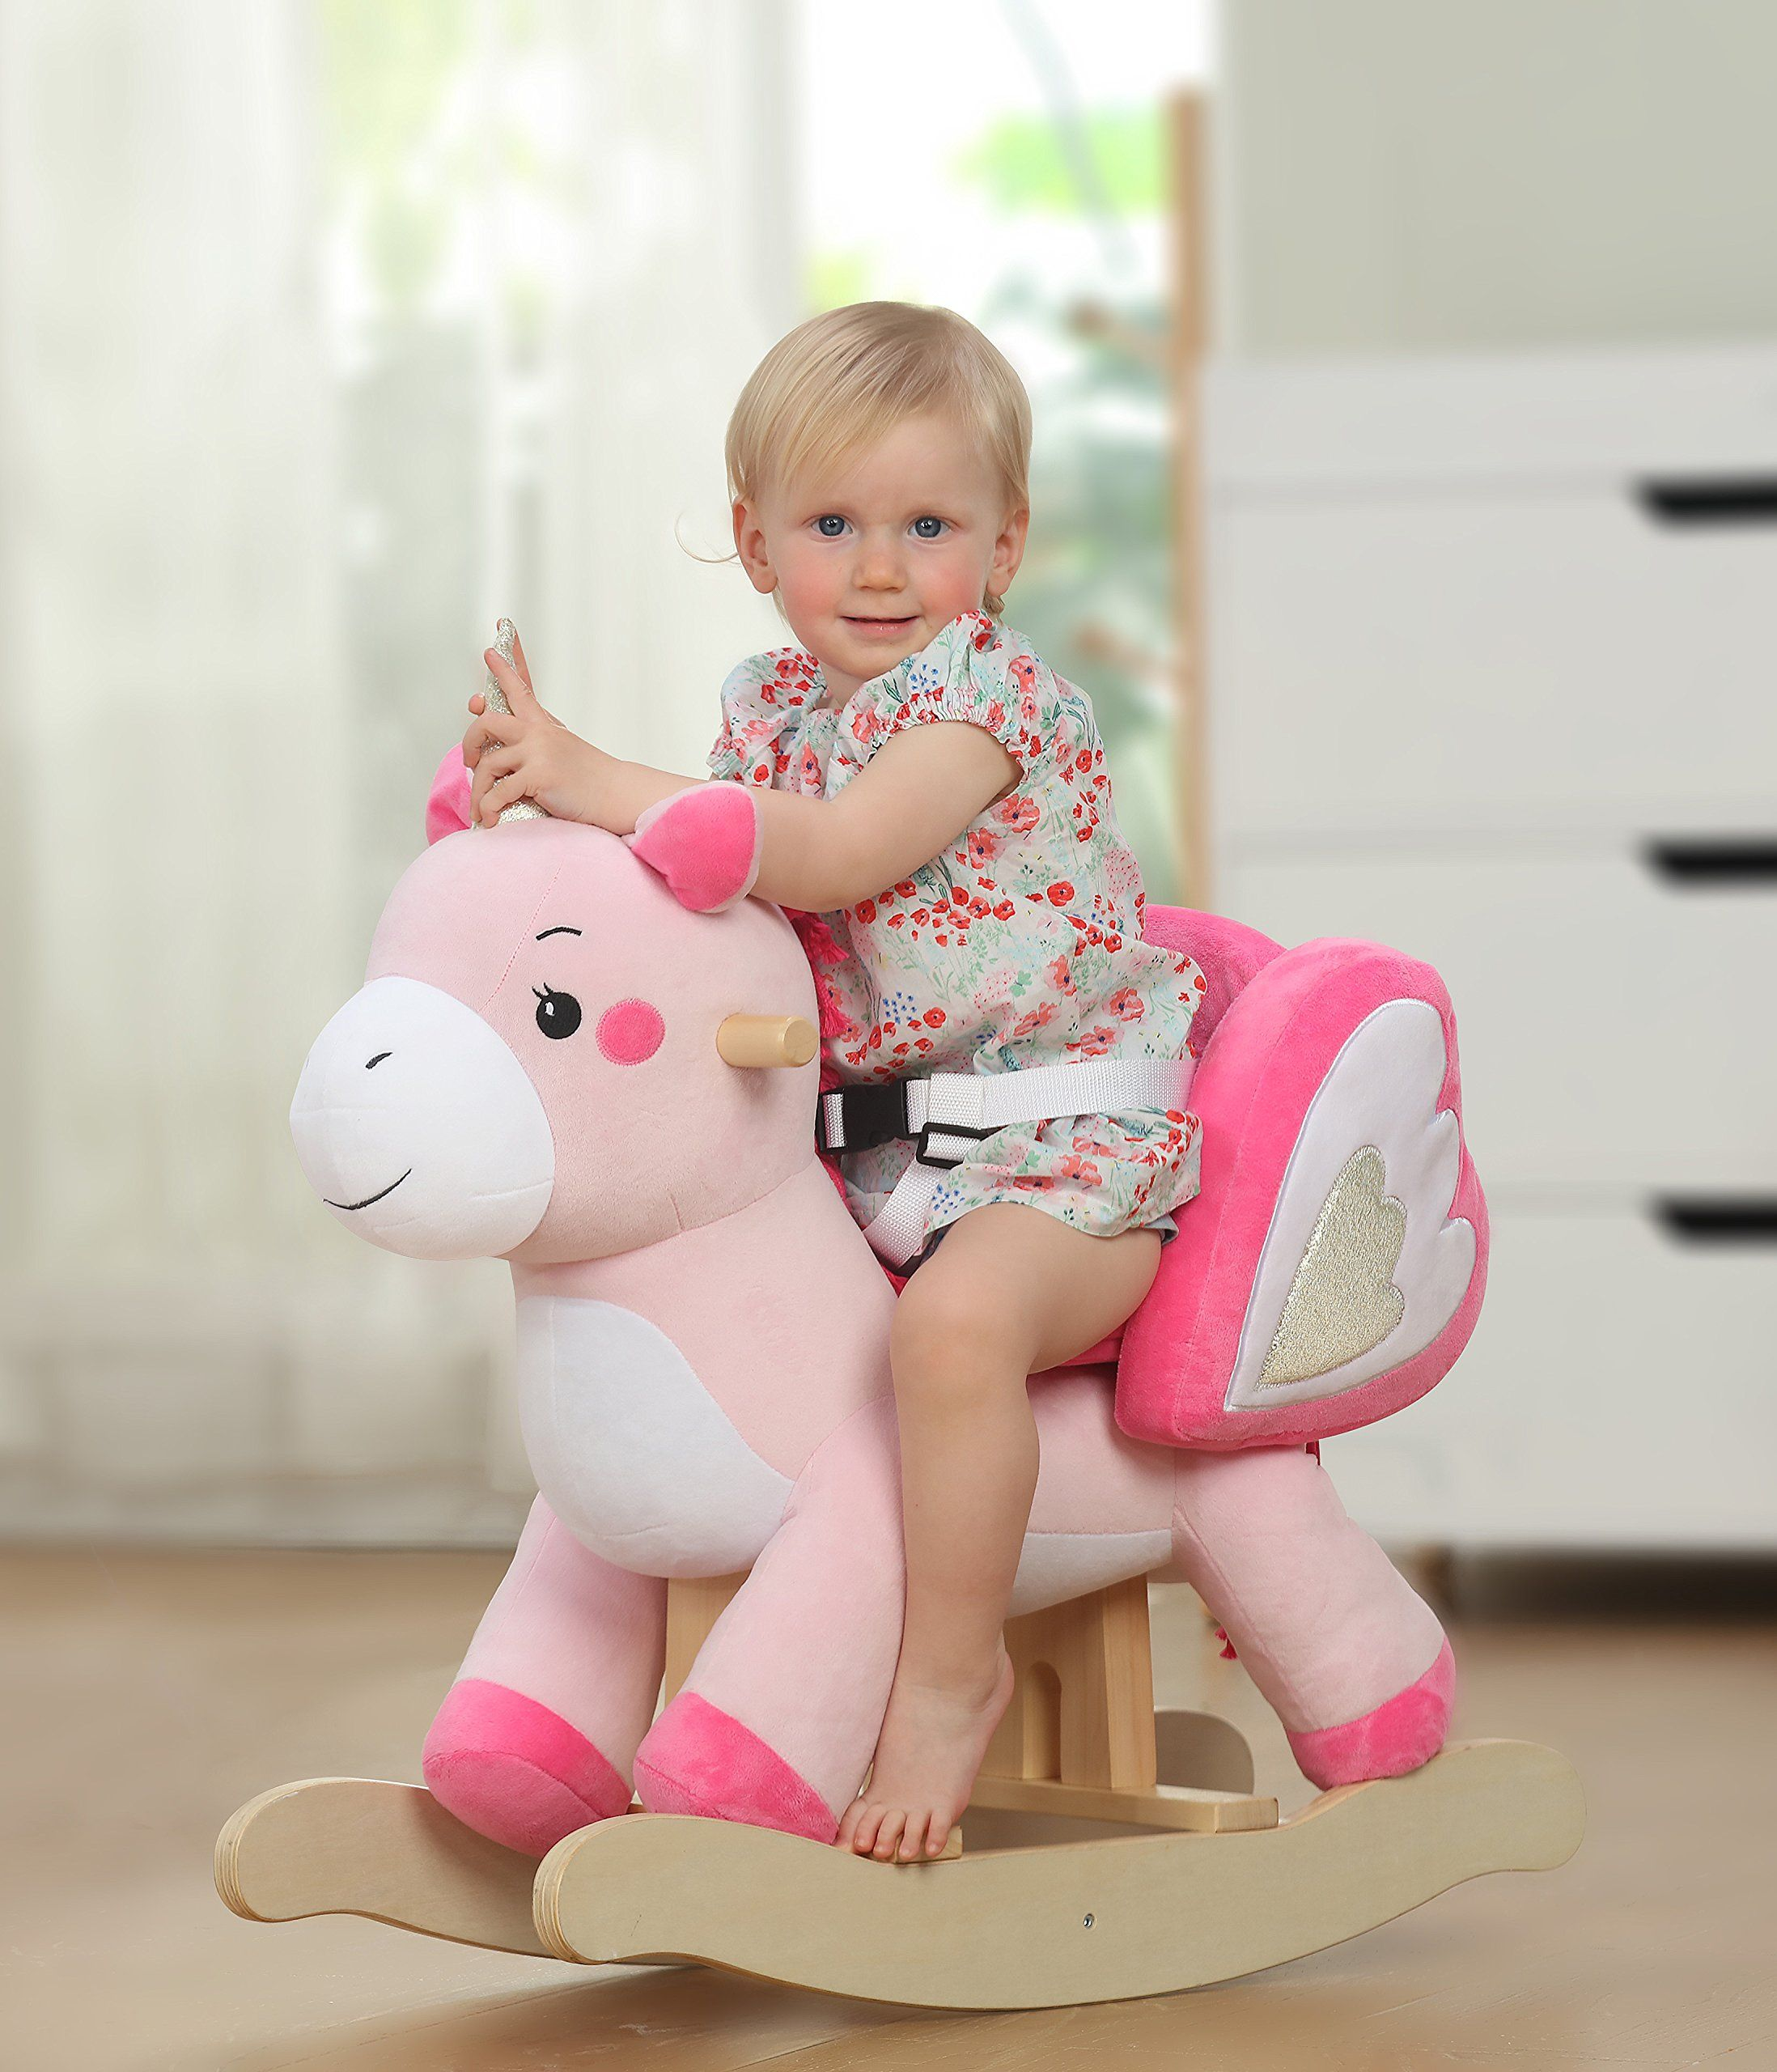 Labebe Child Rocking Horse Toy Pink Rocking Horse Plush Unicorn Rocker Toy For Kid 13 Years Stuffed Anim Kids Ride On Toys Baby Rocking Horse Rocking Horse Toy